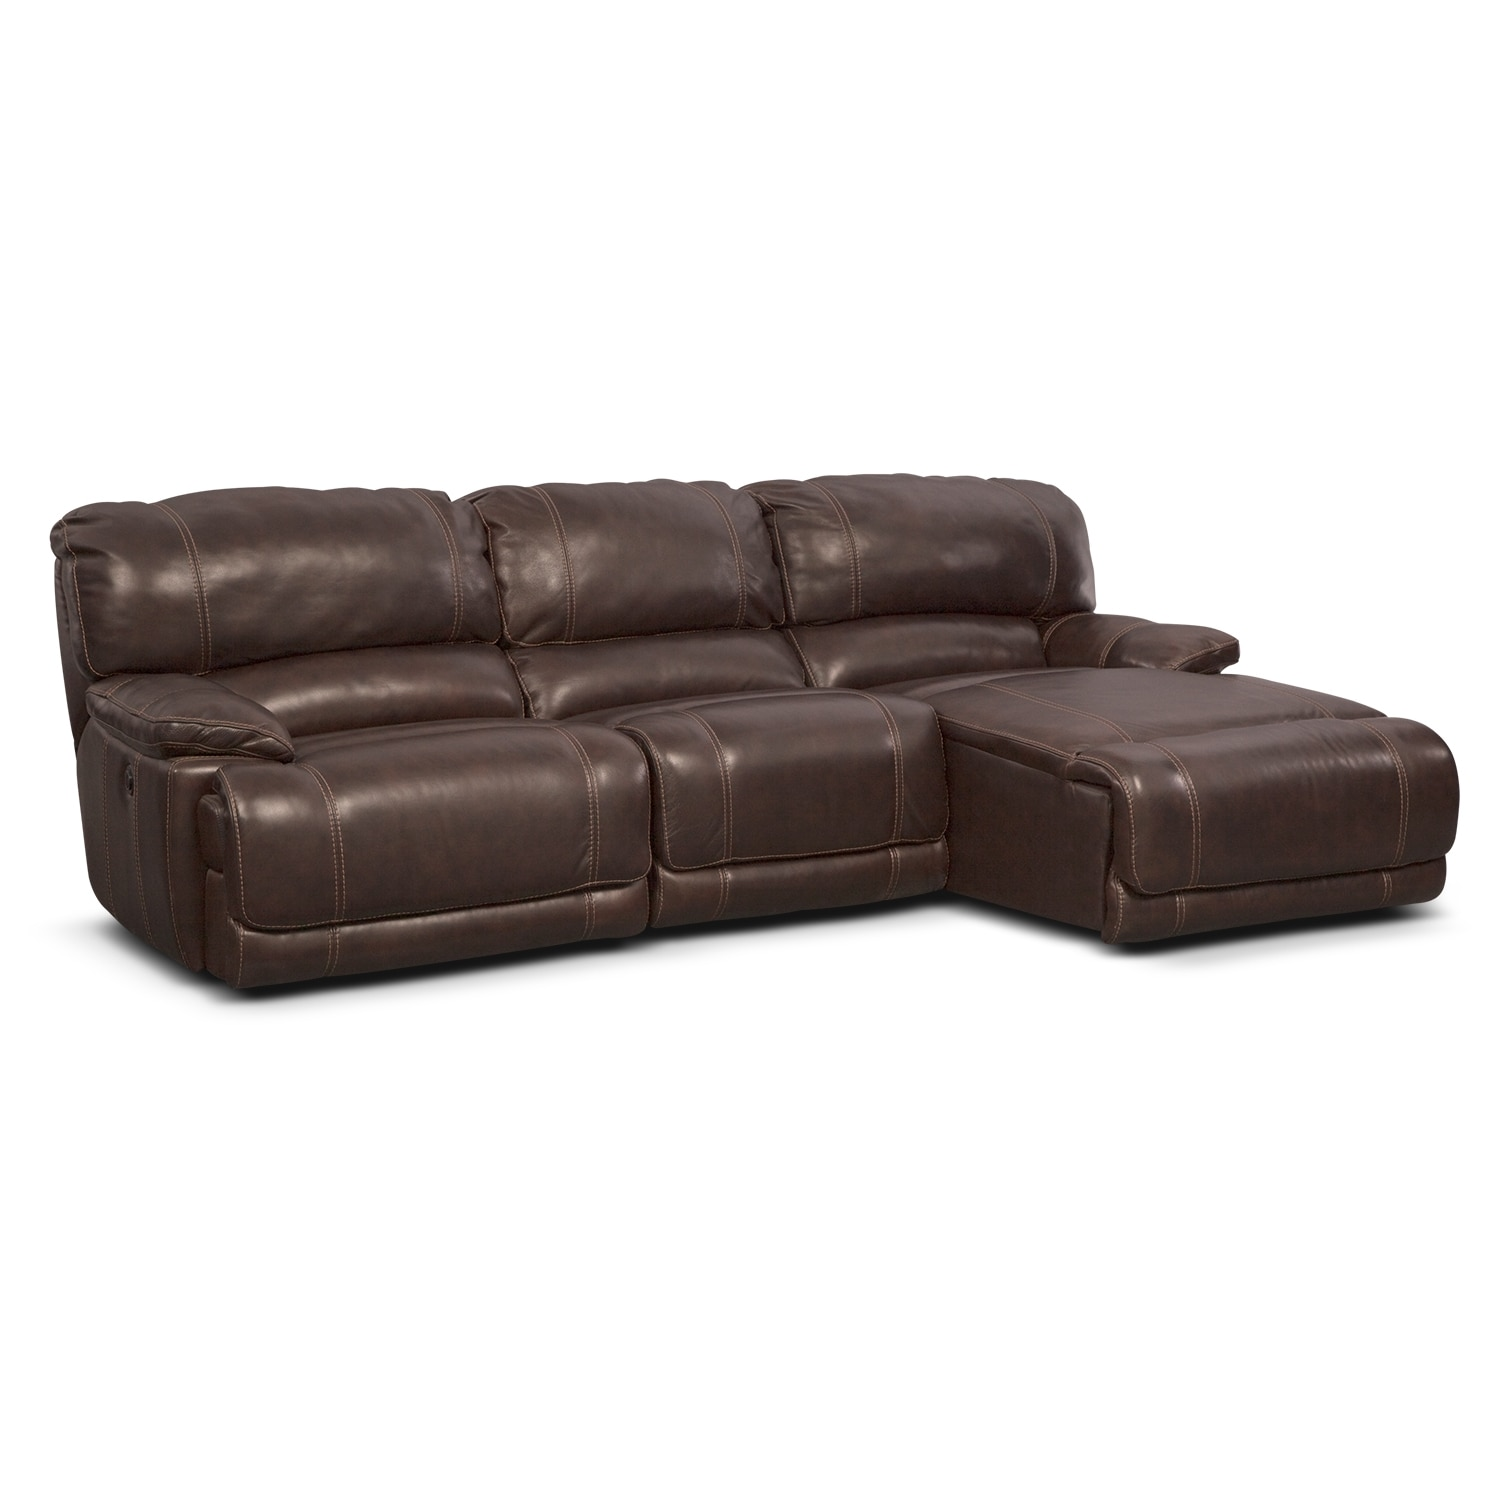 St. Malo 3 Piece Power Reclining Sectional With Right Facing Chaise   Brown